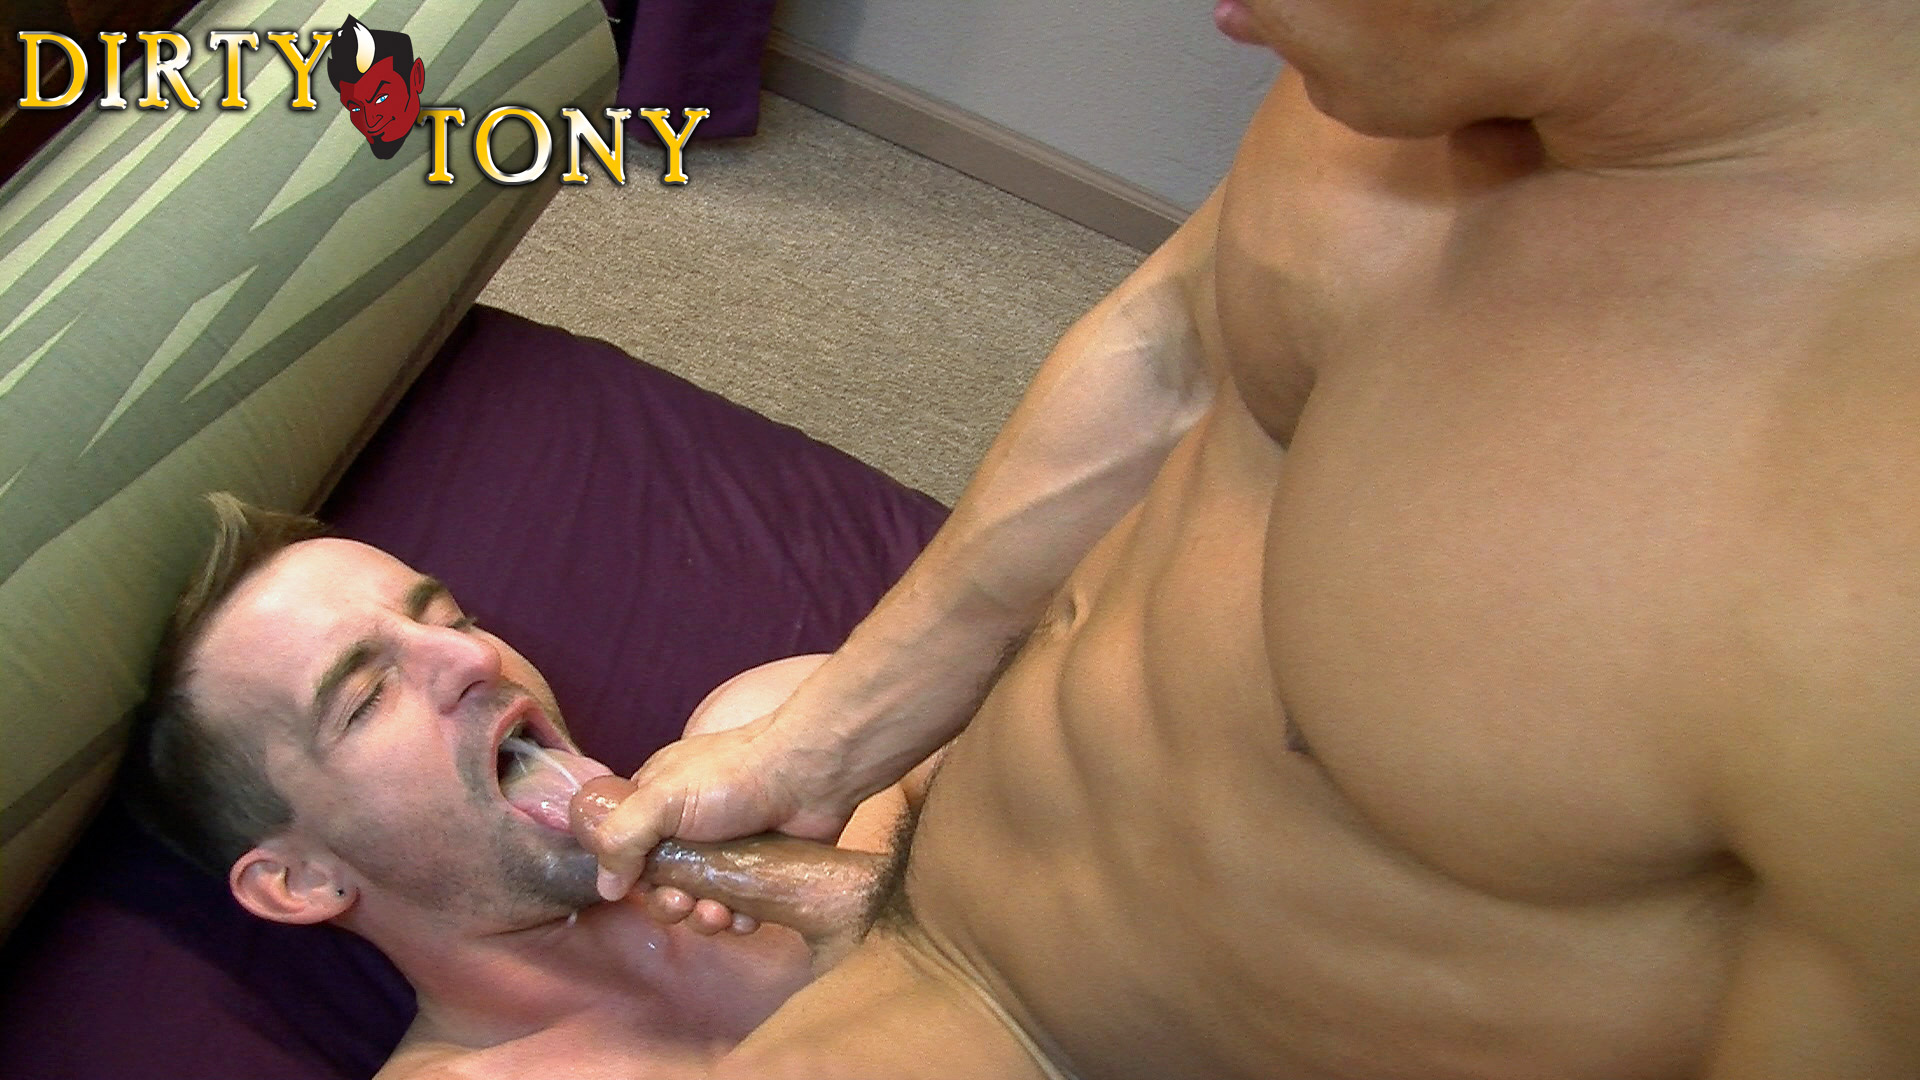 Dirty-Tony-51-Cum-Shots-Cum-Facials-Cum-Eating-Jizz-Eating-Muscle-Guys-Eating-Cum-01 This is hot... 51 Amateur Cum Shots in Random Guys Faces